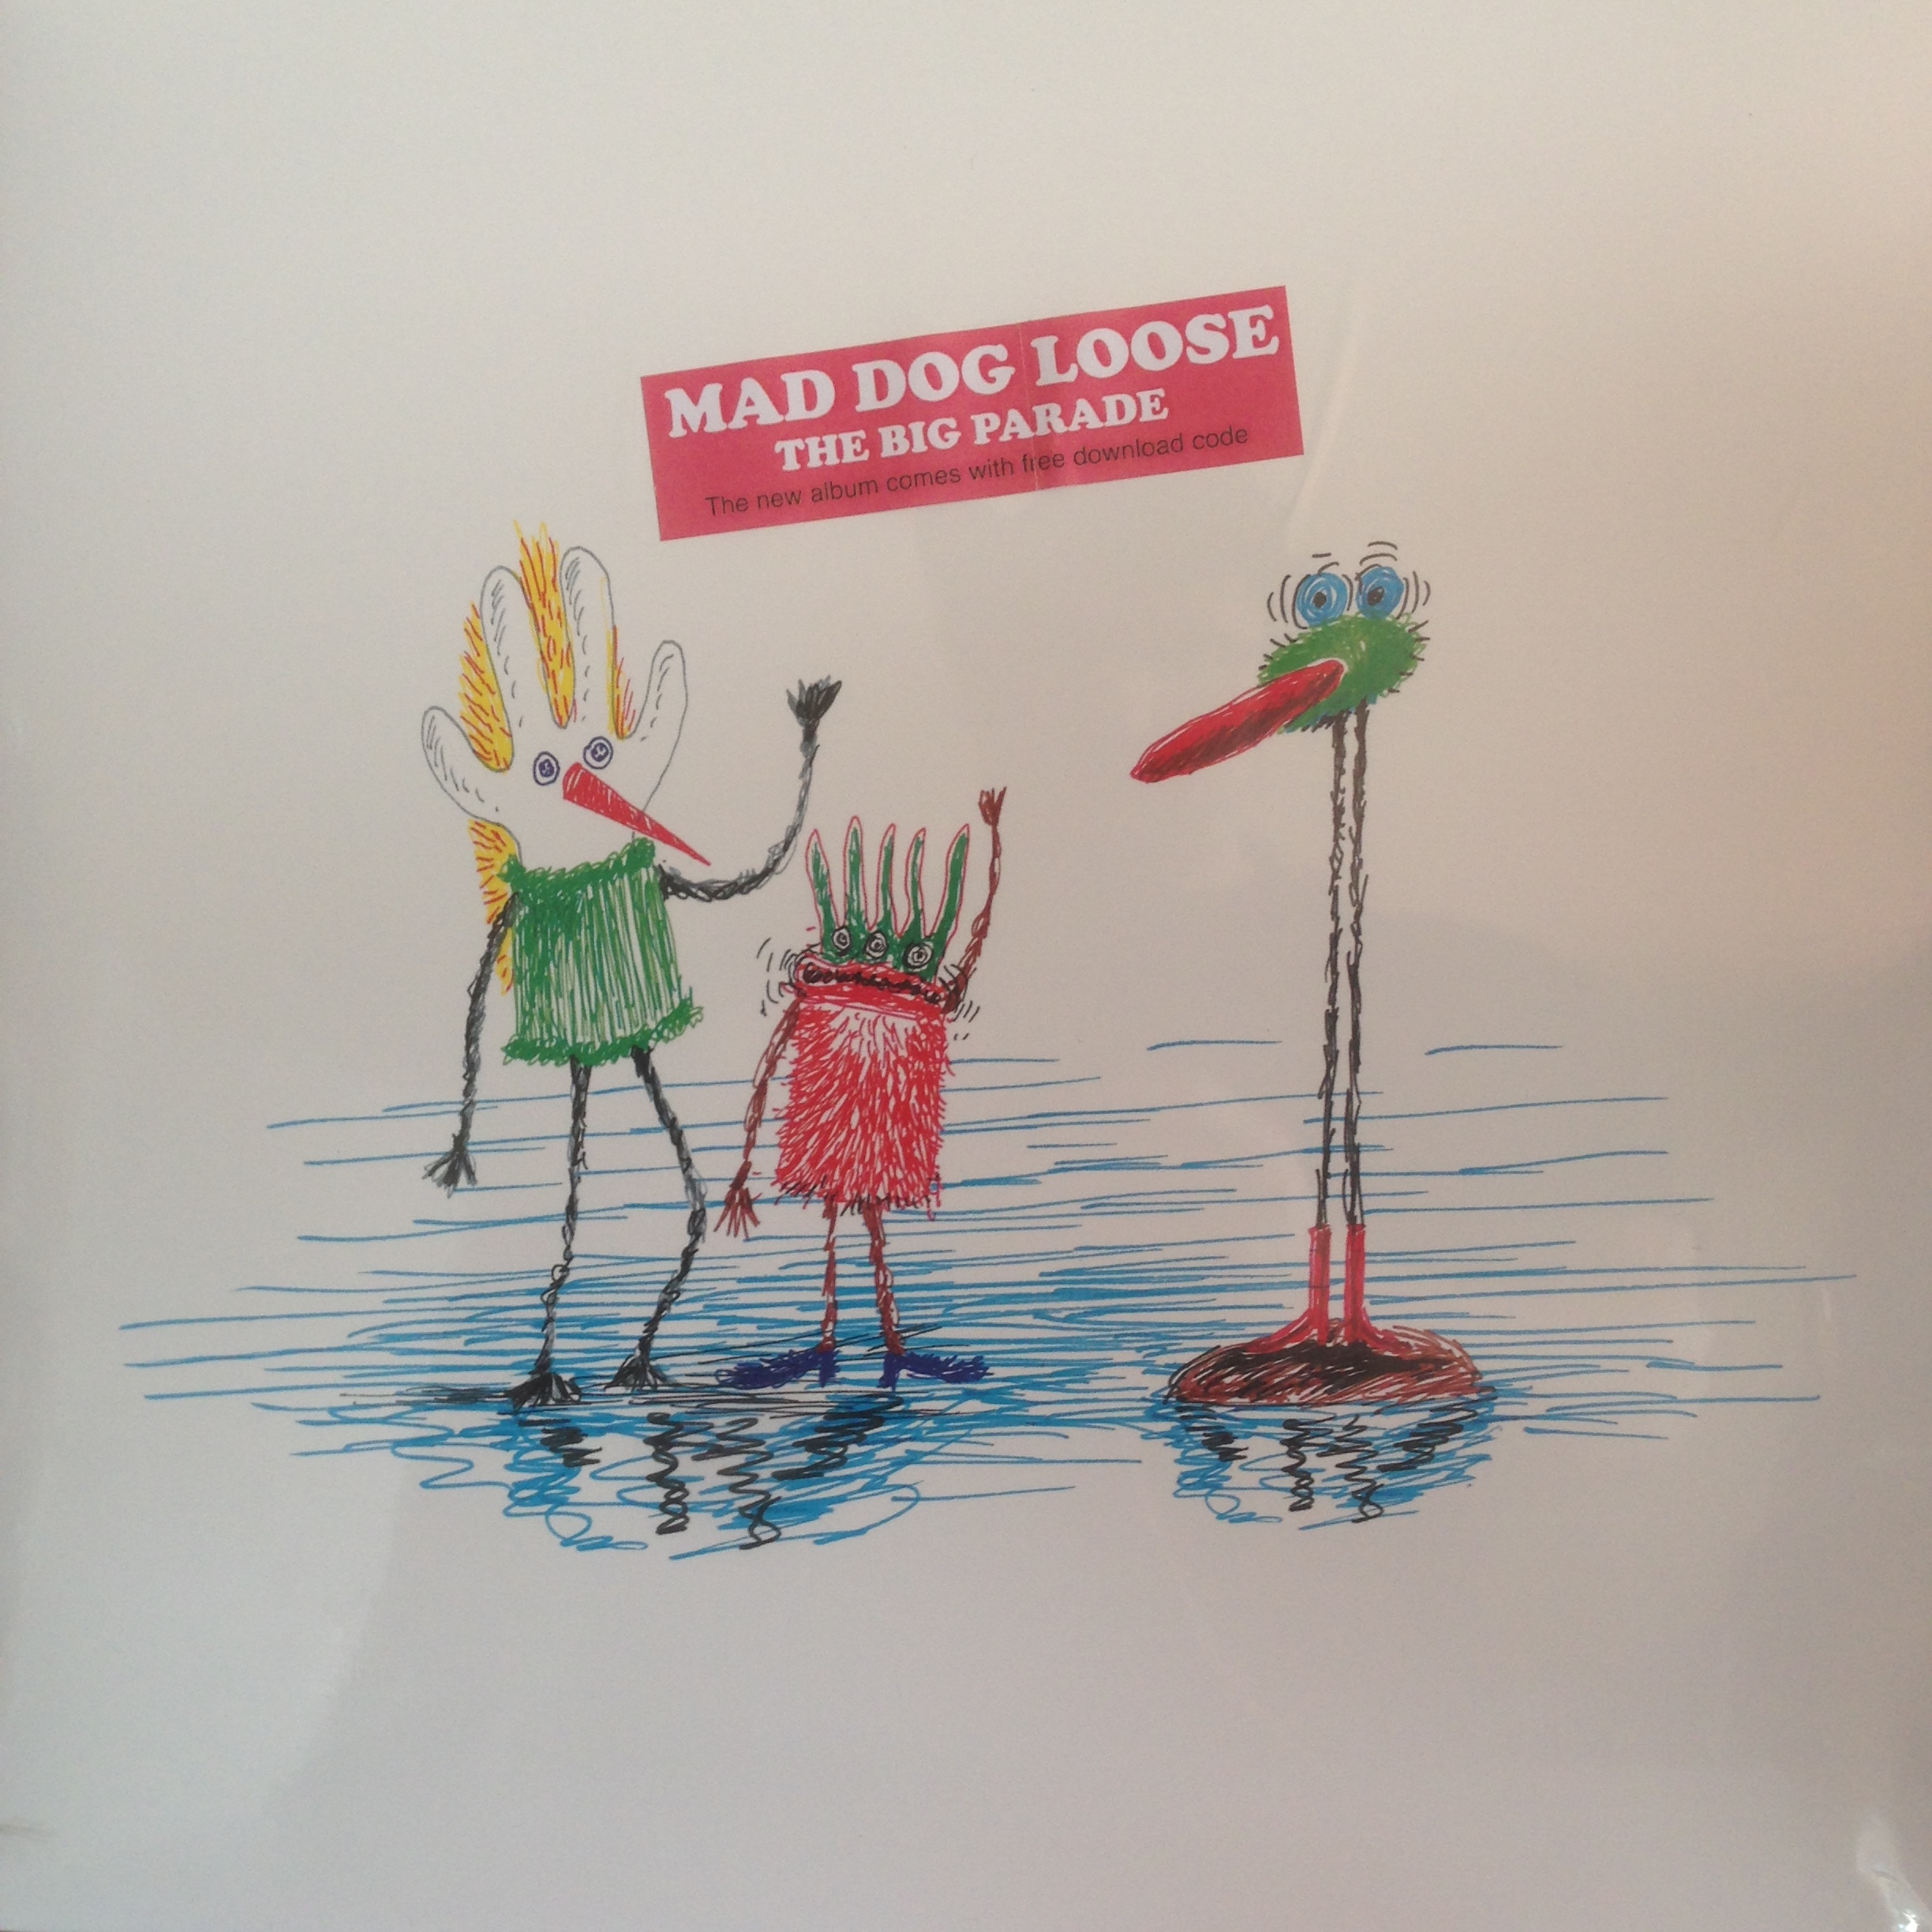 pochettes/Mad-Dog-Loose_The-Big-Parade.jpg